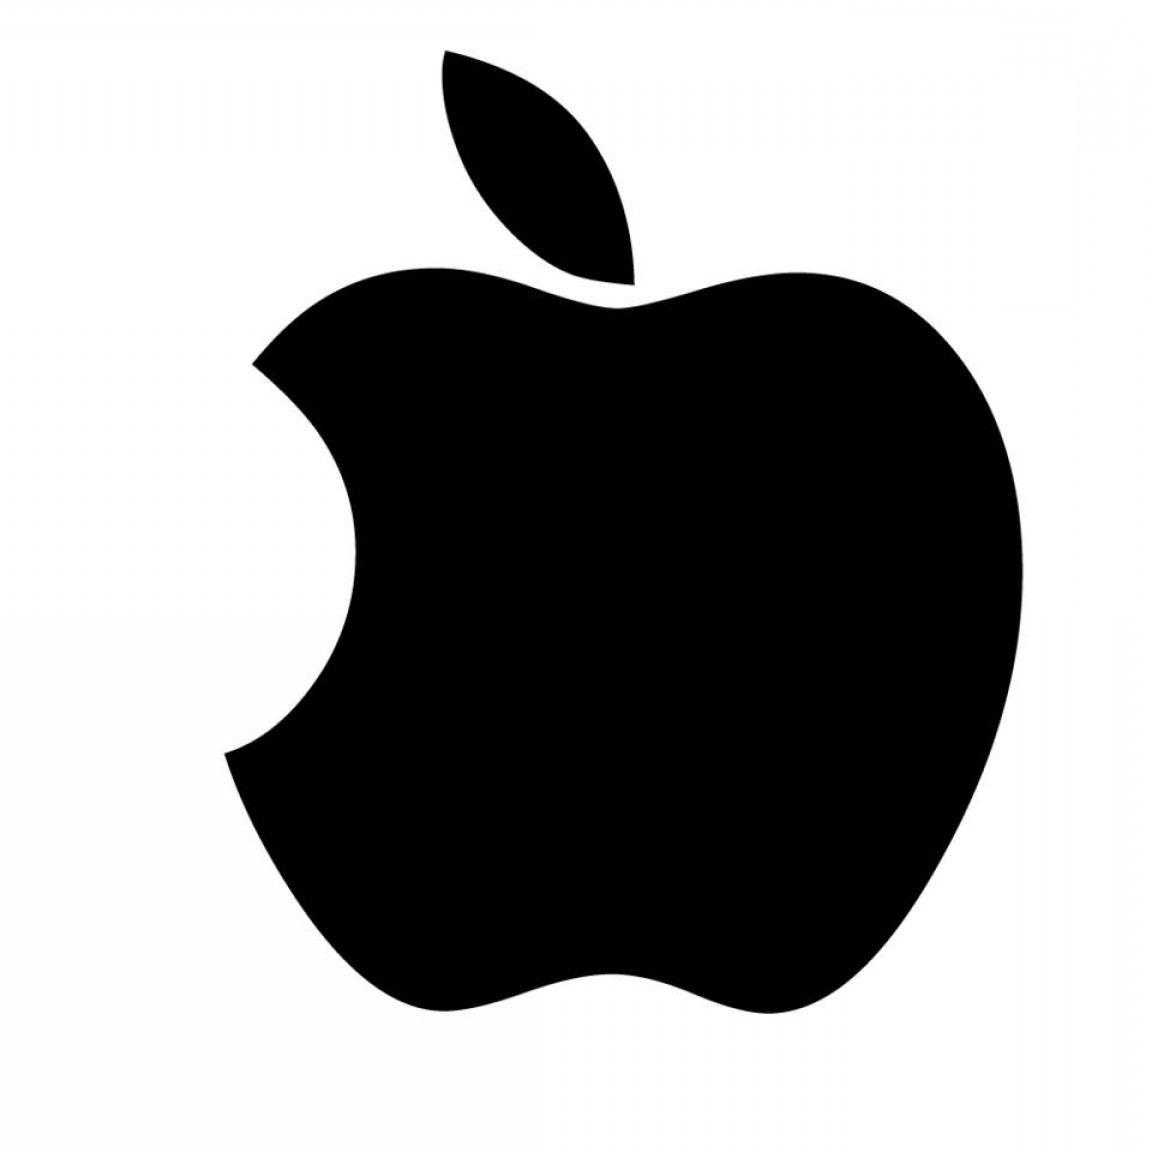 Apple IPhone Logo Vector: Apple S Apple Pay Announcement And Possible Loyalty Program